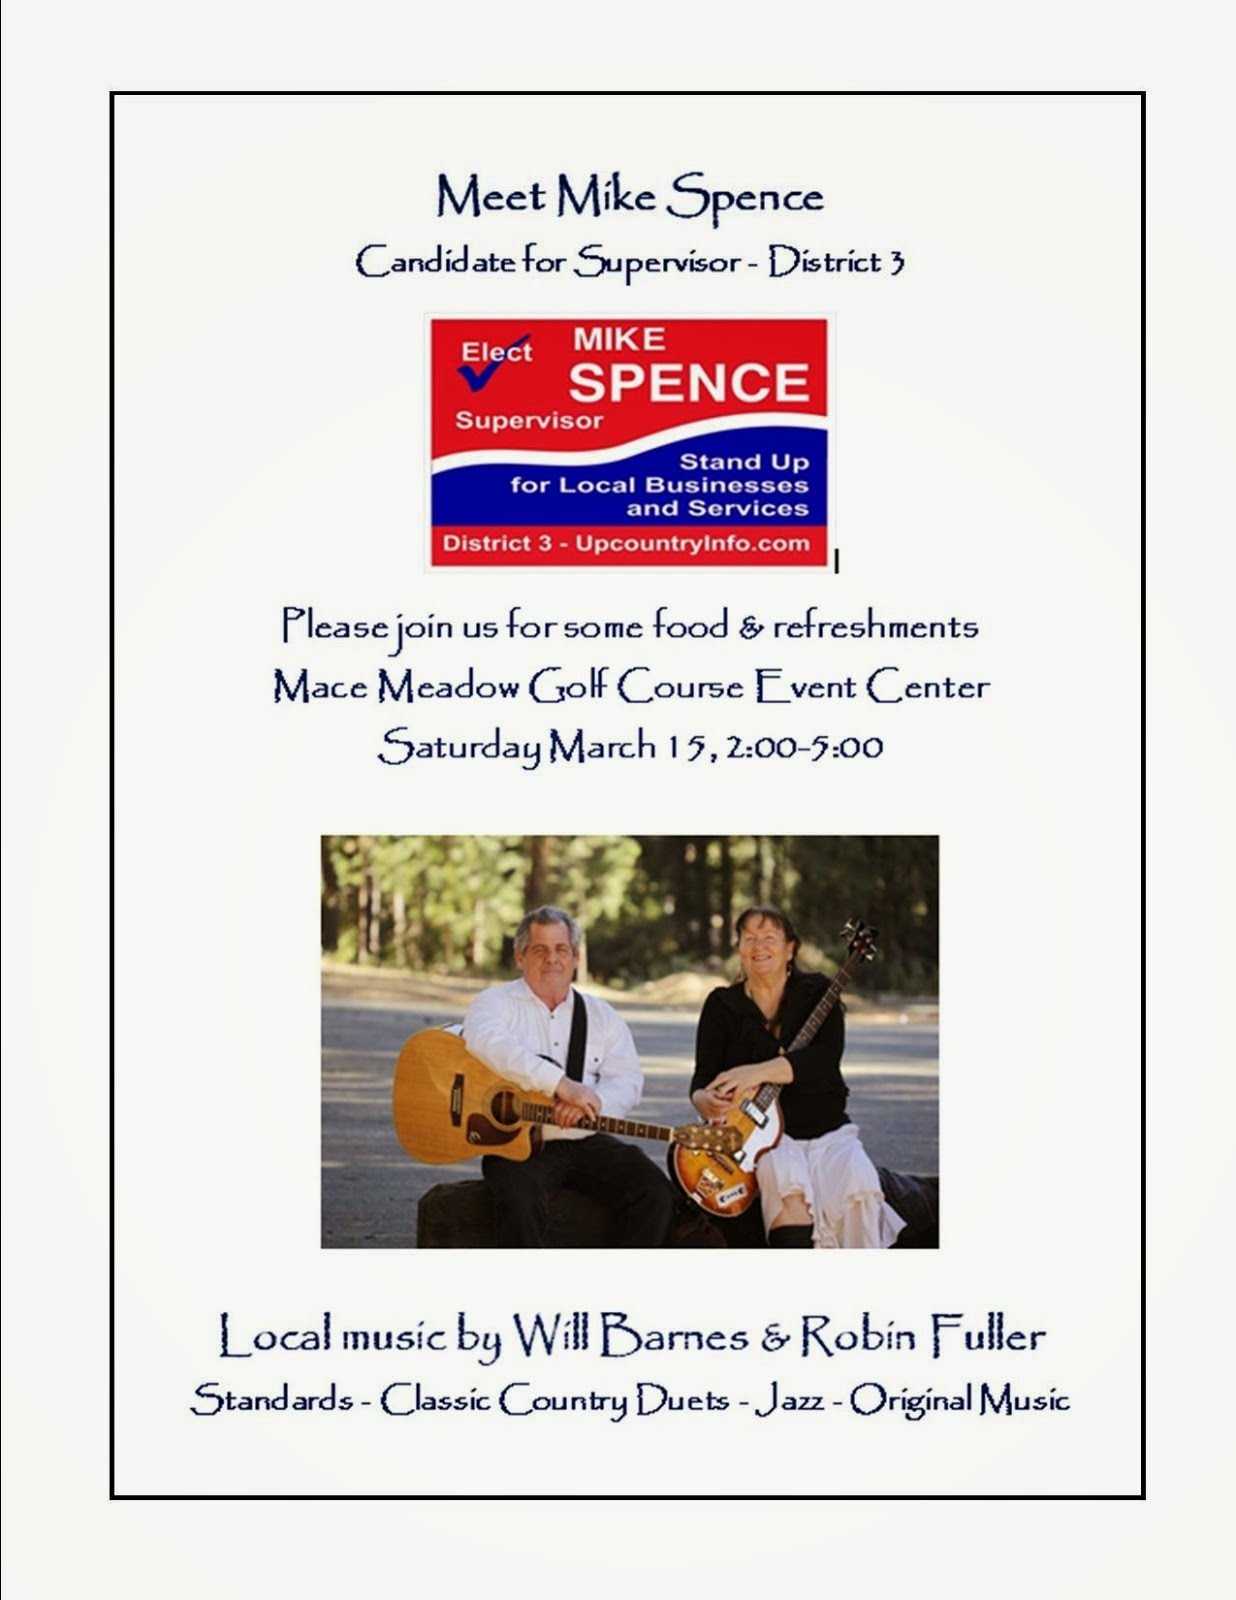 Meet Mike Spence - Sat Mar 15